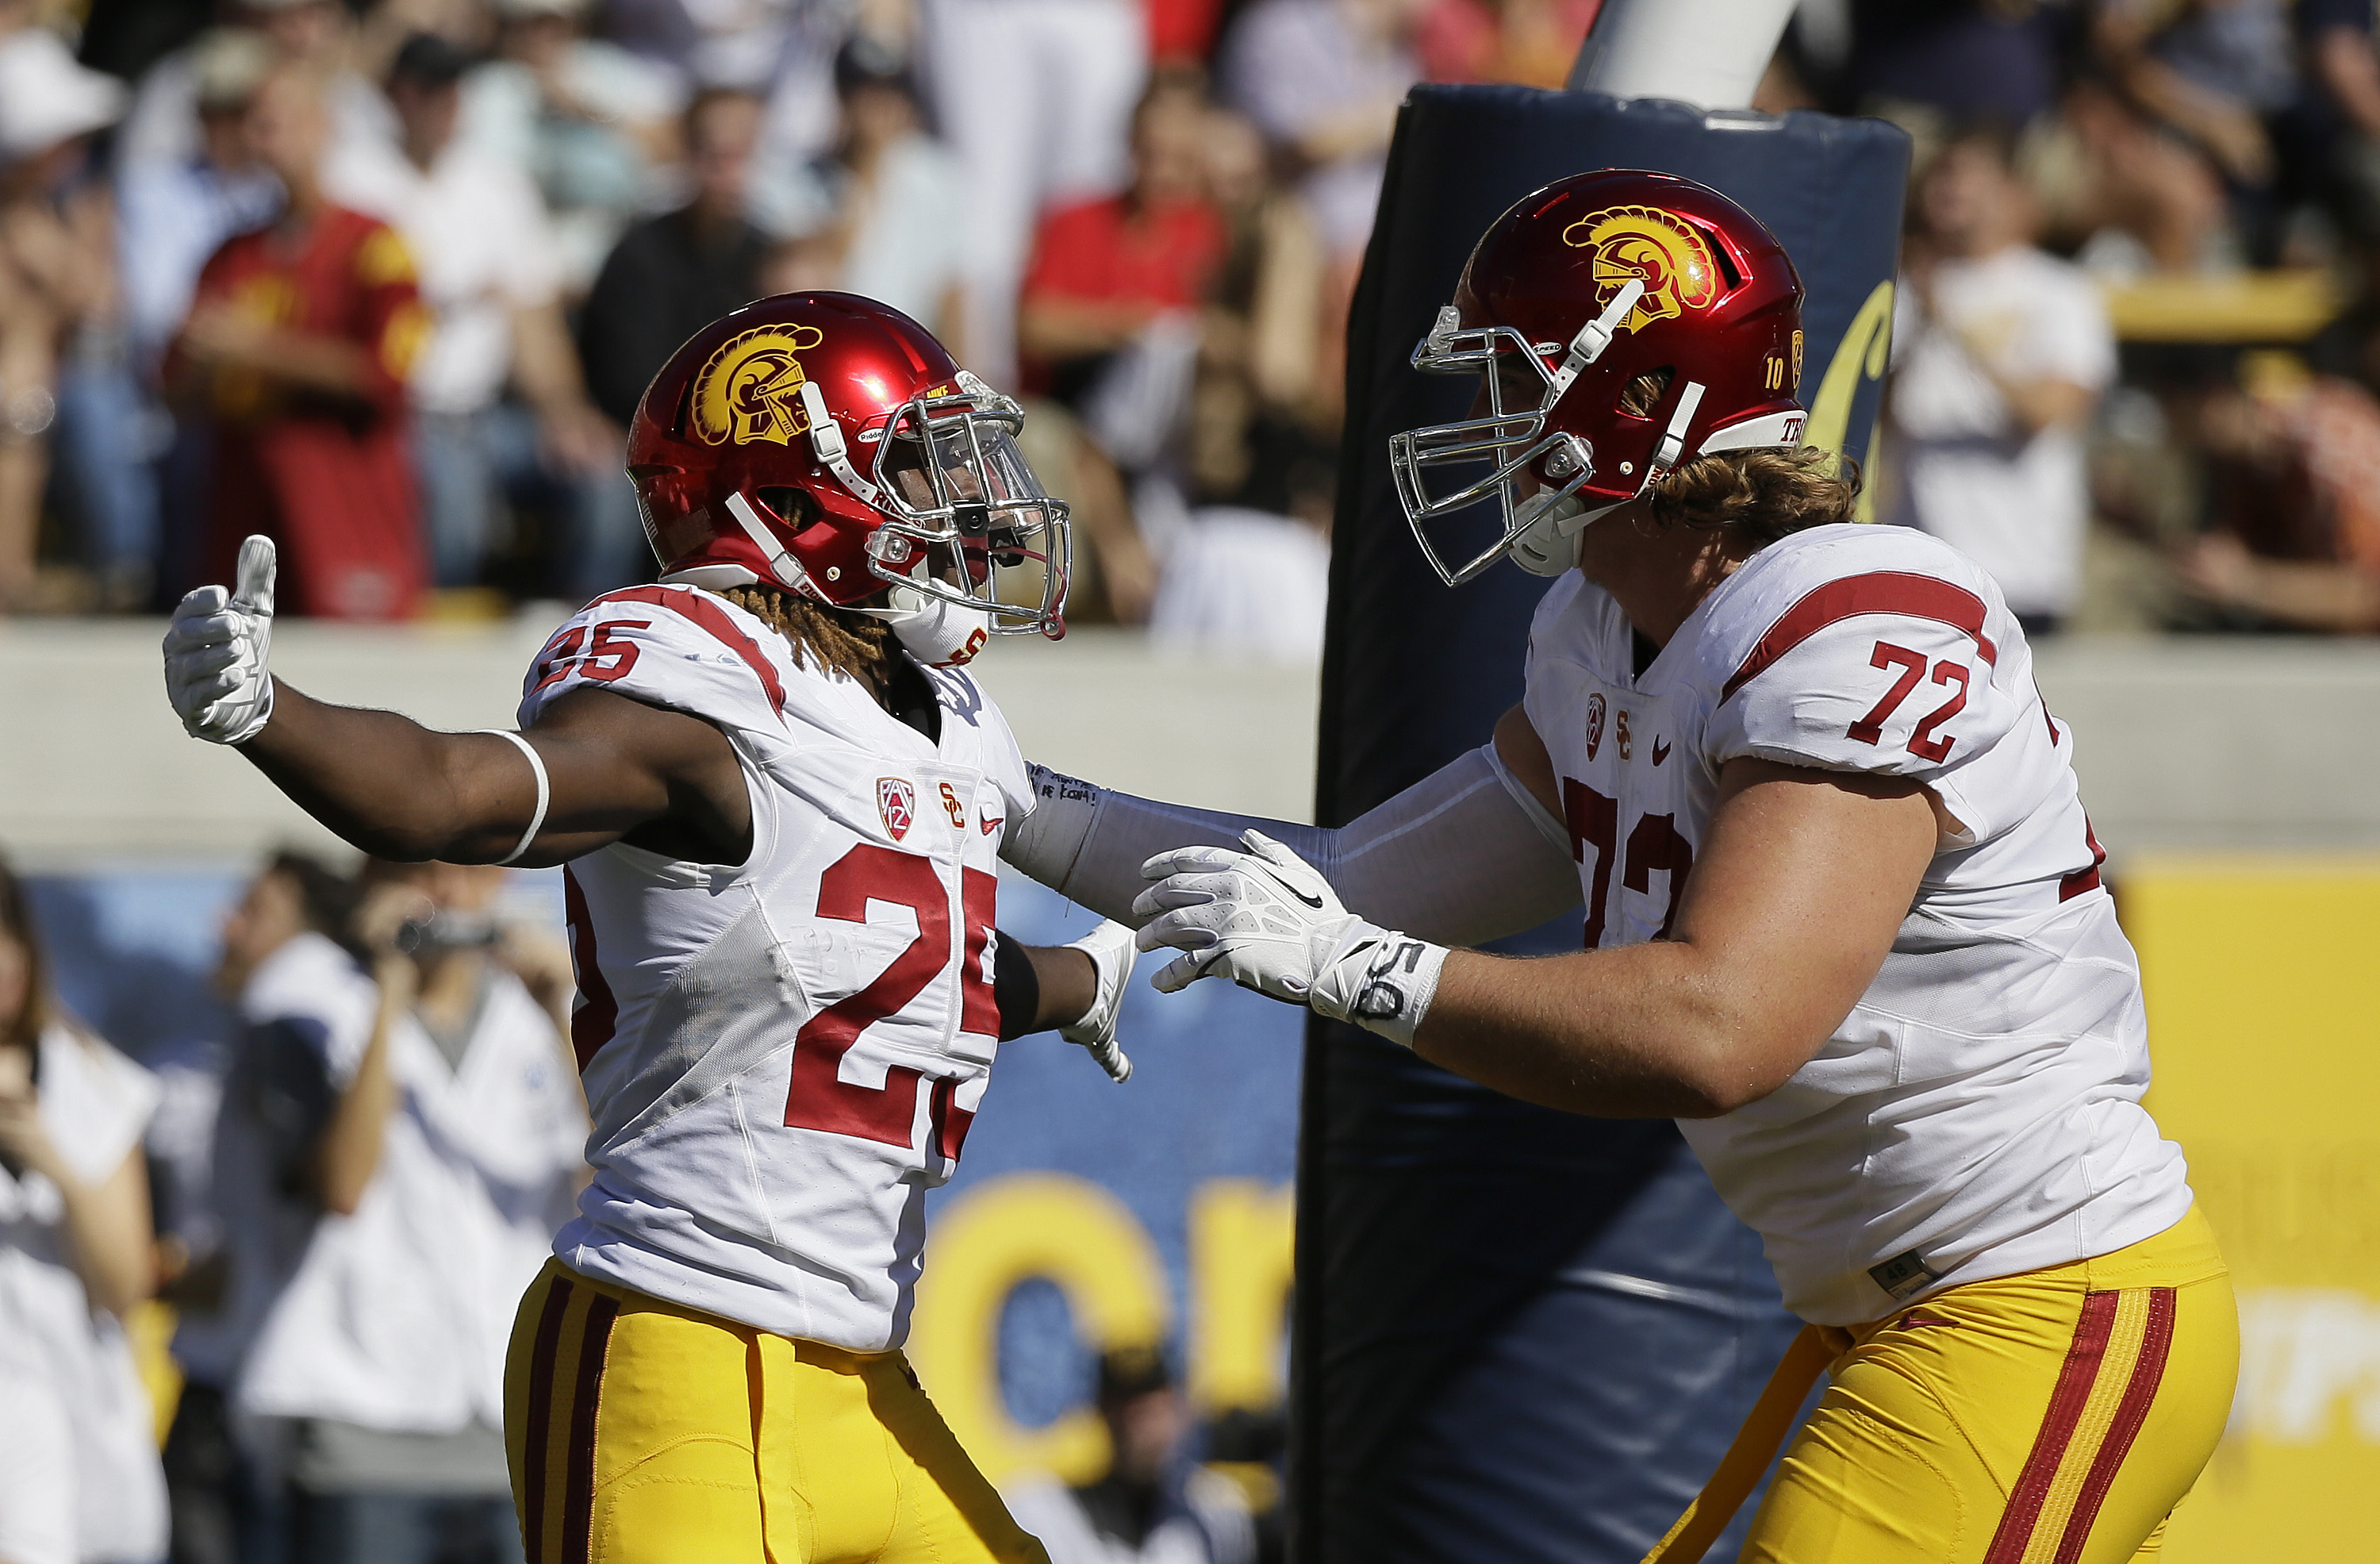 Southern California running back Ronald Jones II, left, is greeted by teammate Chad Wheeler, right, after scoring a touchdown during the first half of an NCAA college football game against California, Saturday, Oct. 31, 2015, in Berkeley, Calif. (AP Photo